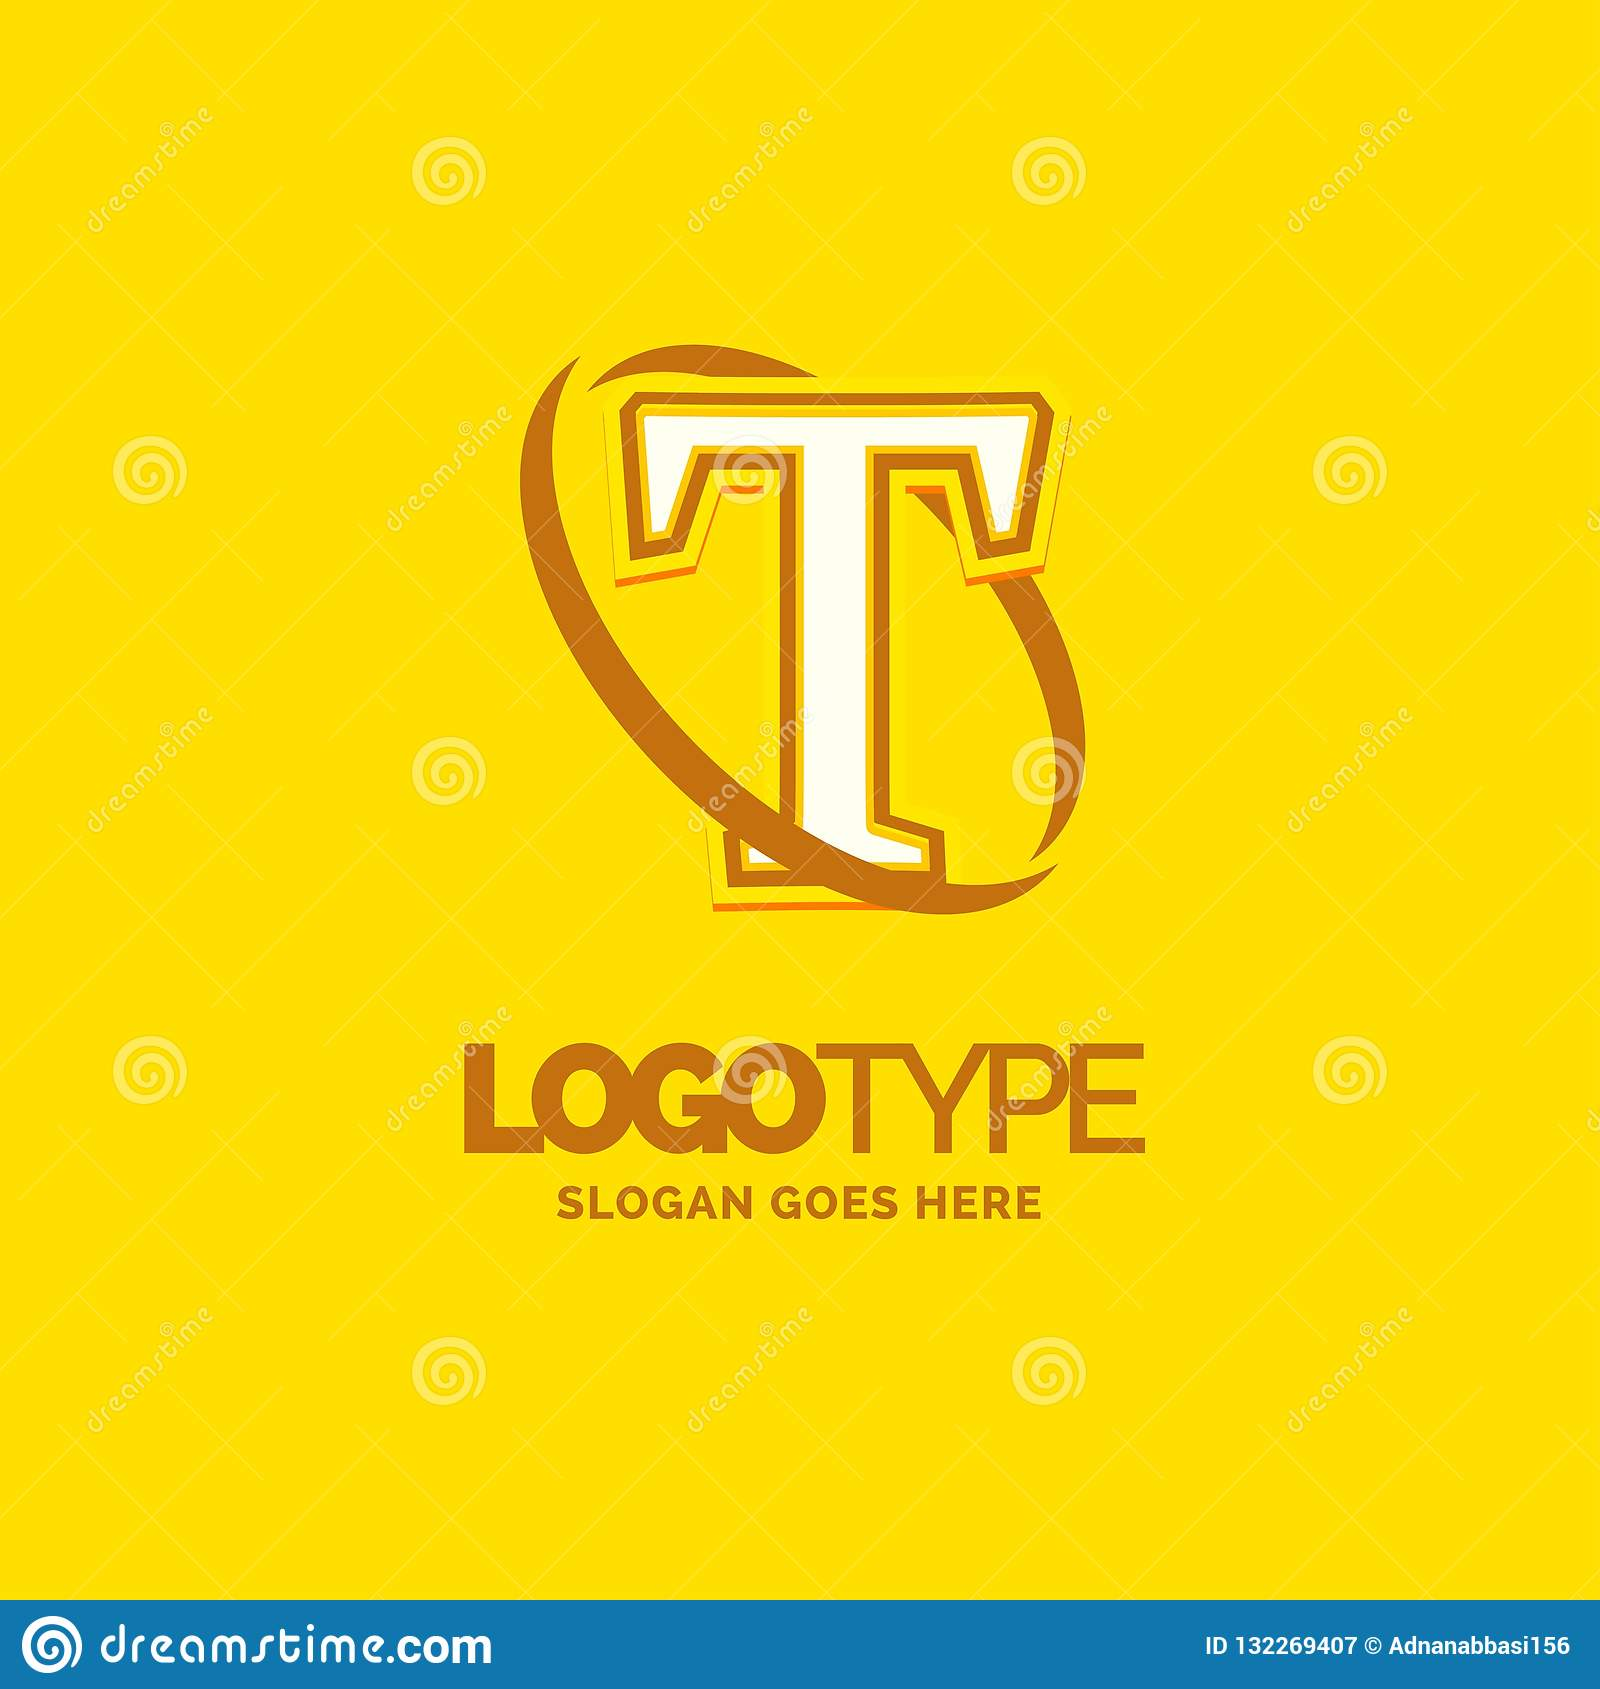 Colorful Company Logo Template With Tagline: T Logo Template . Yellow Background Circle Brand Name